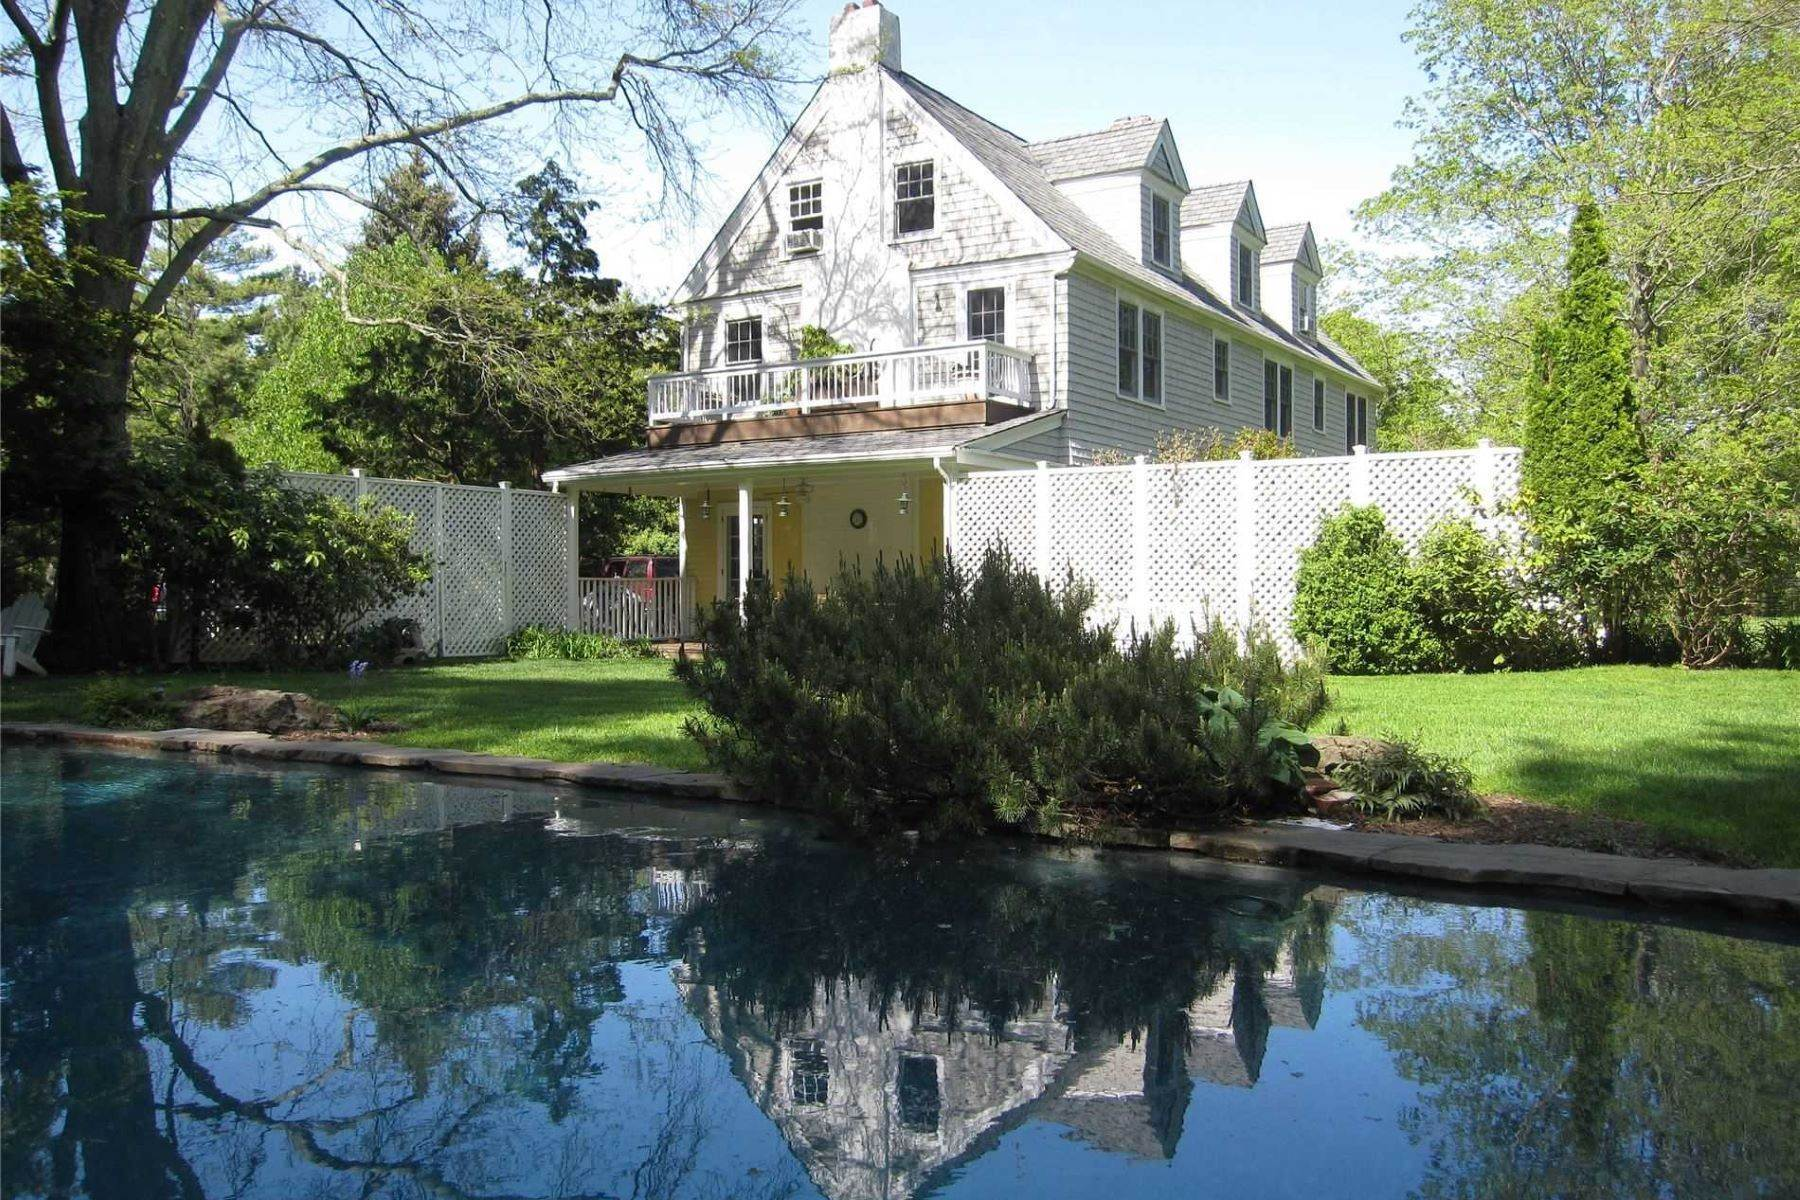 Single Family Homes für Verkauf beim 23 Sunnyside Avenue, Shelter Island H, Ny, 11964 23 Sunnyside Avenue Other Areas, New York 11964 Vereinigte Staaten